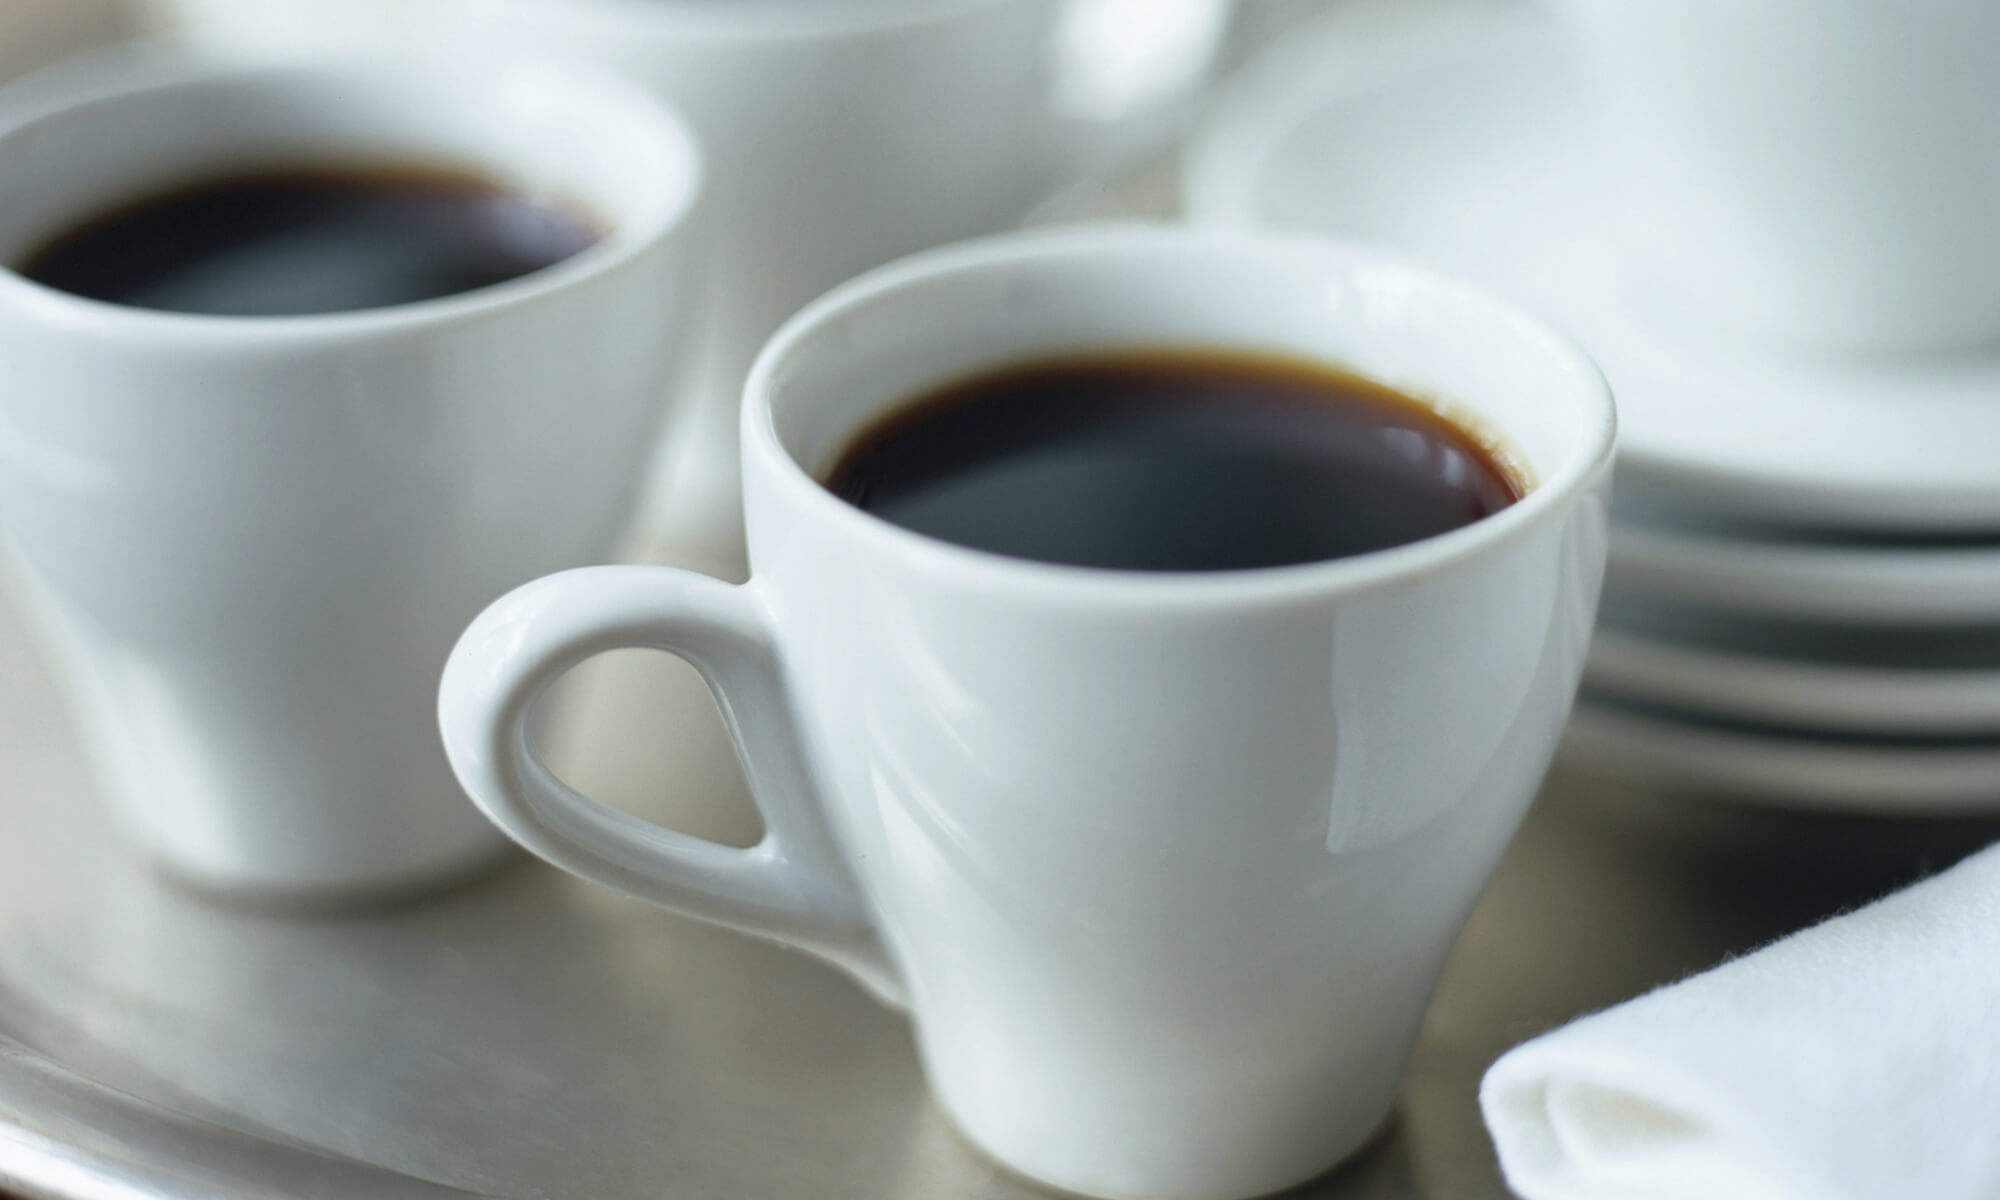 Cups of Espresso on silver tray